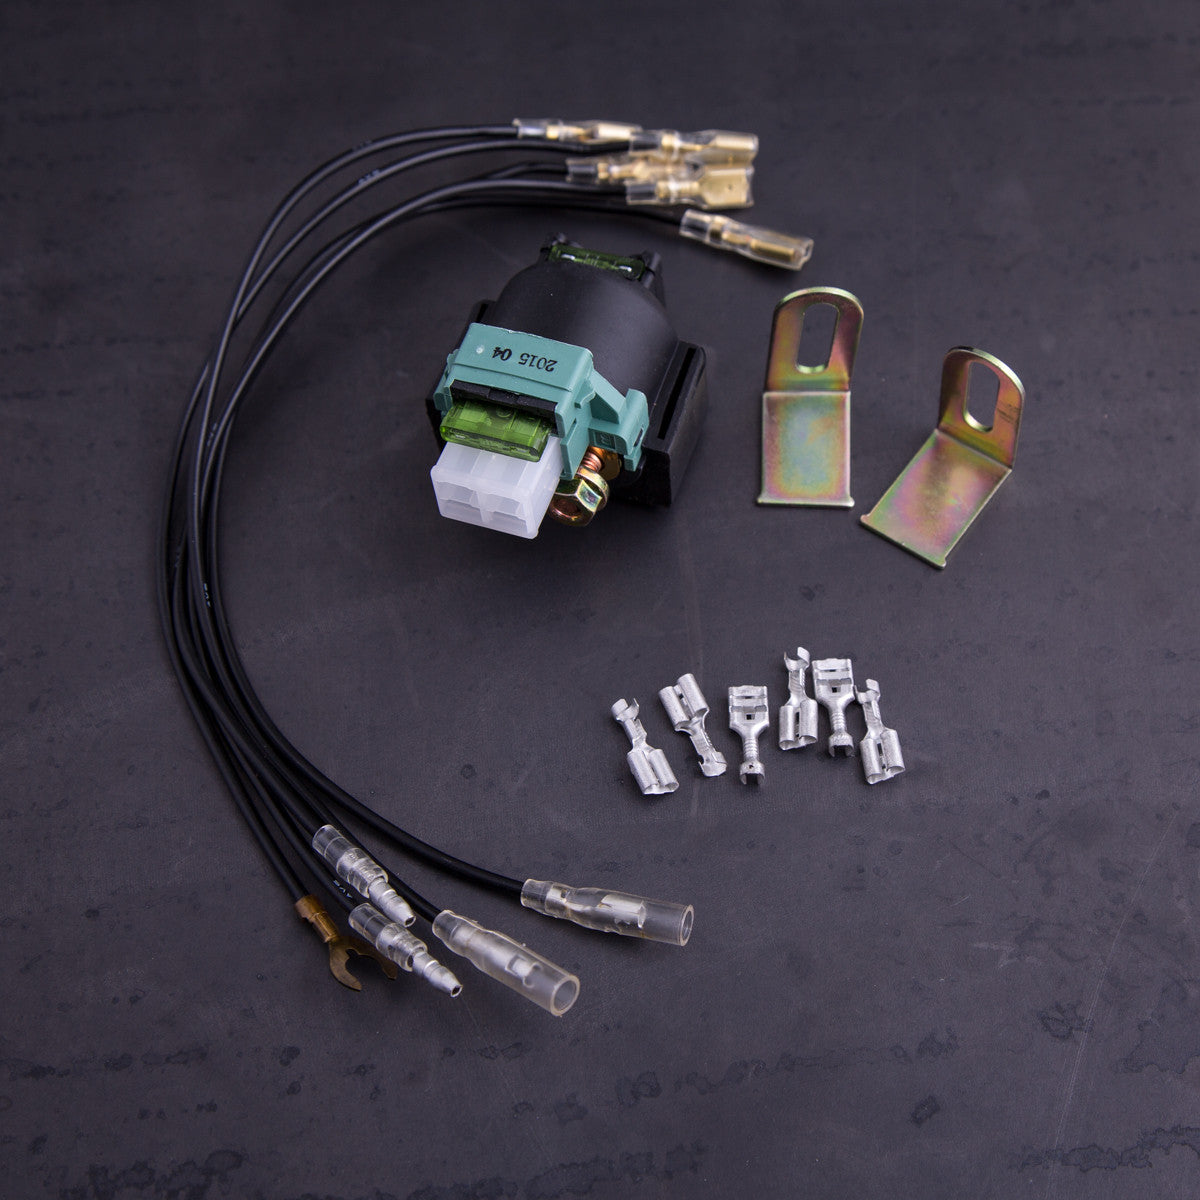 universal starter relay revival cycles gm starter solenoid wiring diagram universal starter relay solenoid revival cycles